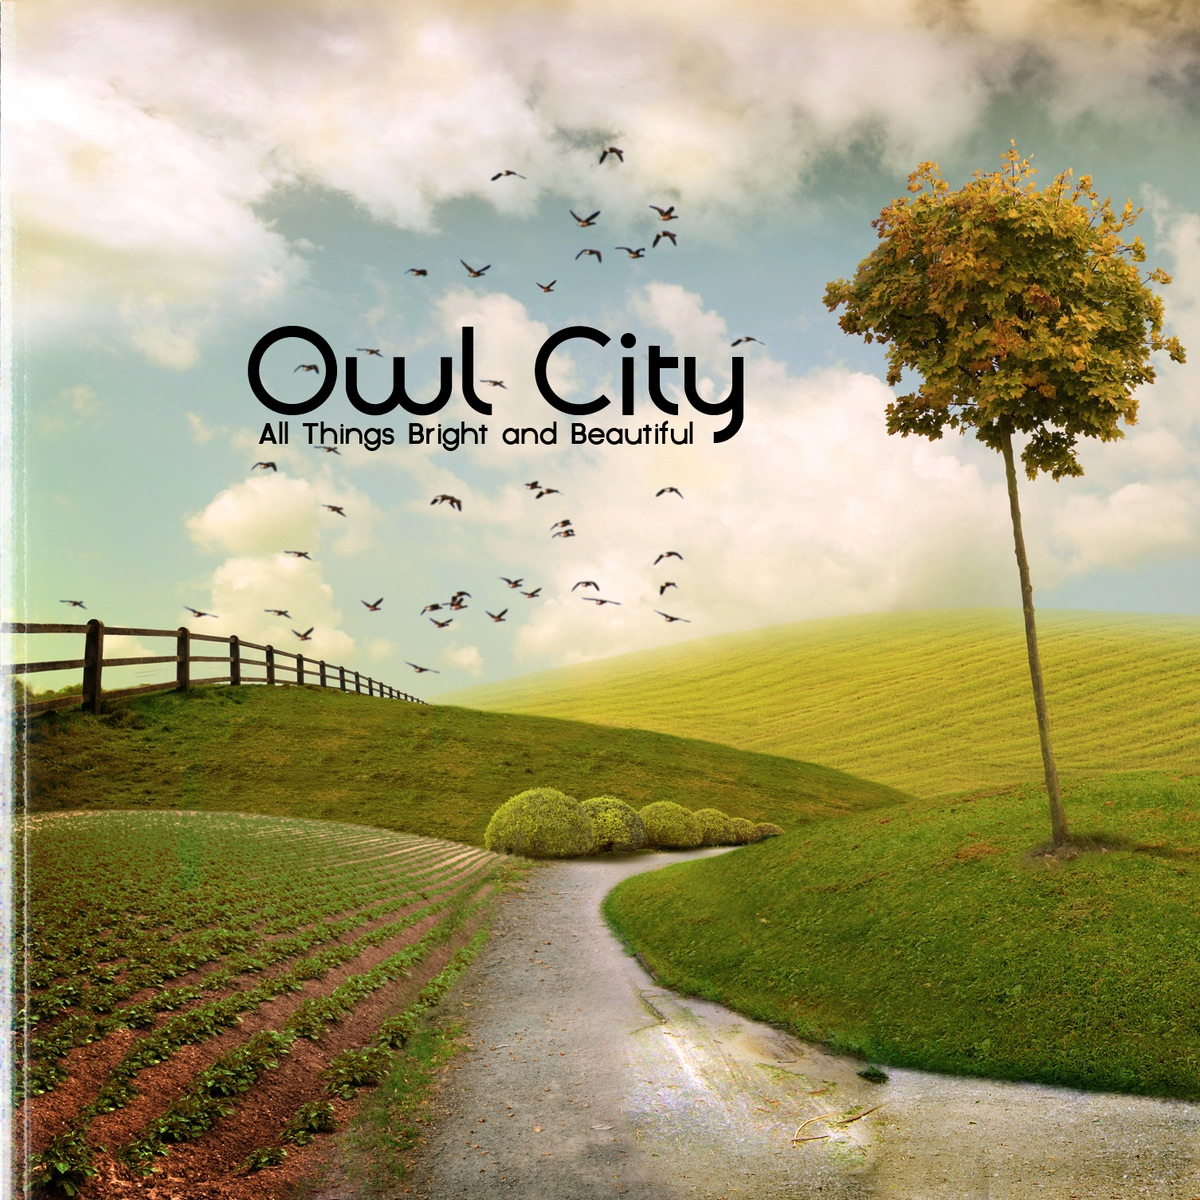 All Things Bright and Beautiful Album Cover by Owl City